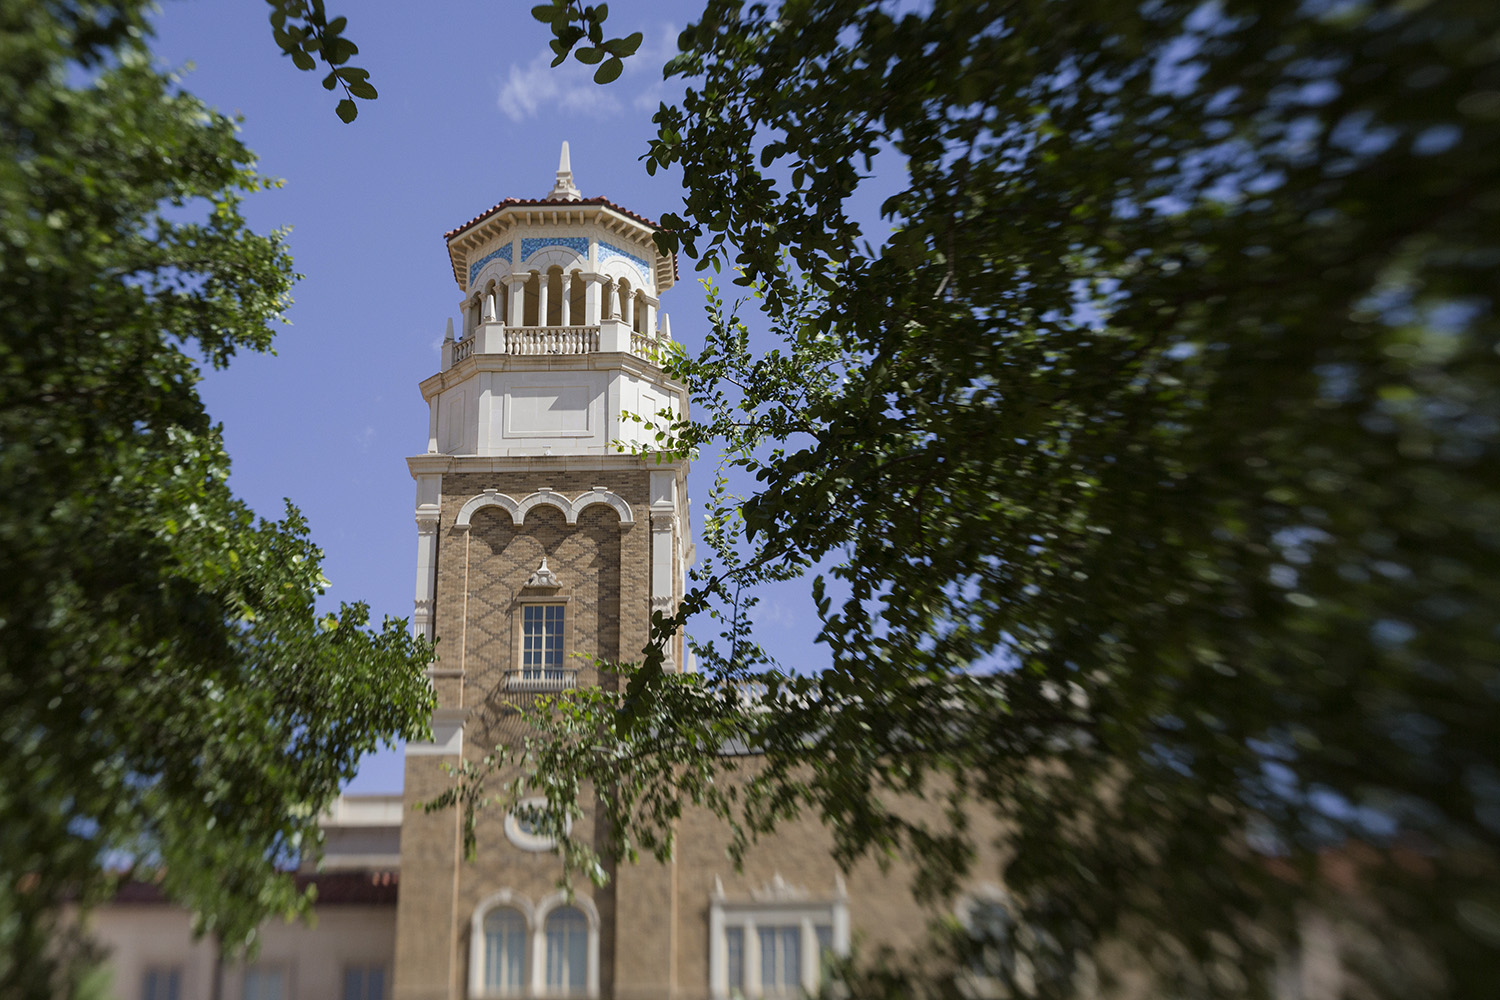 The bell tower of the English building